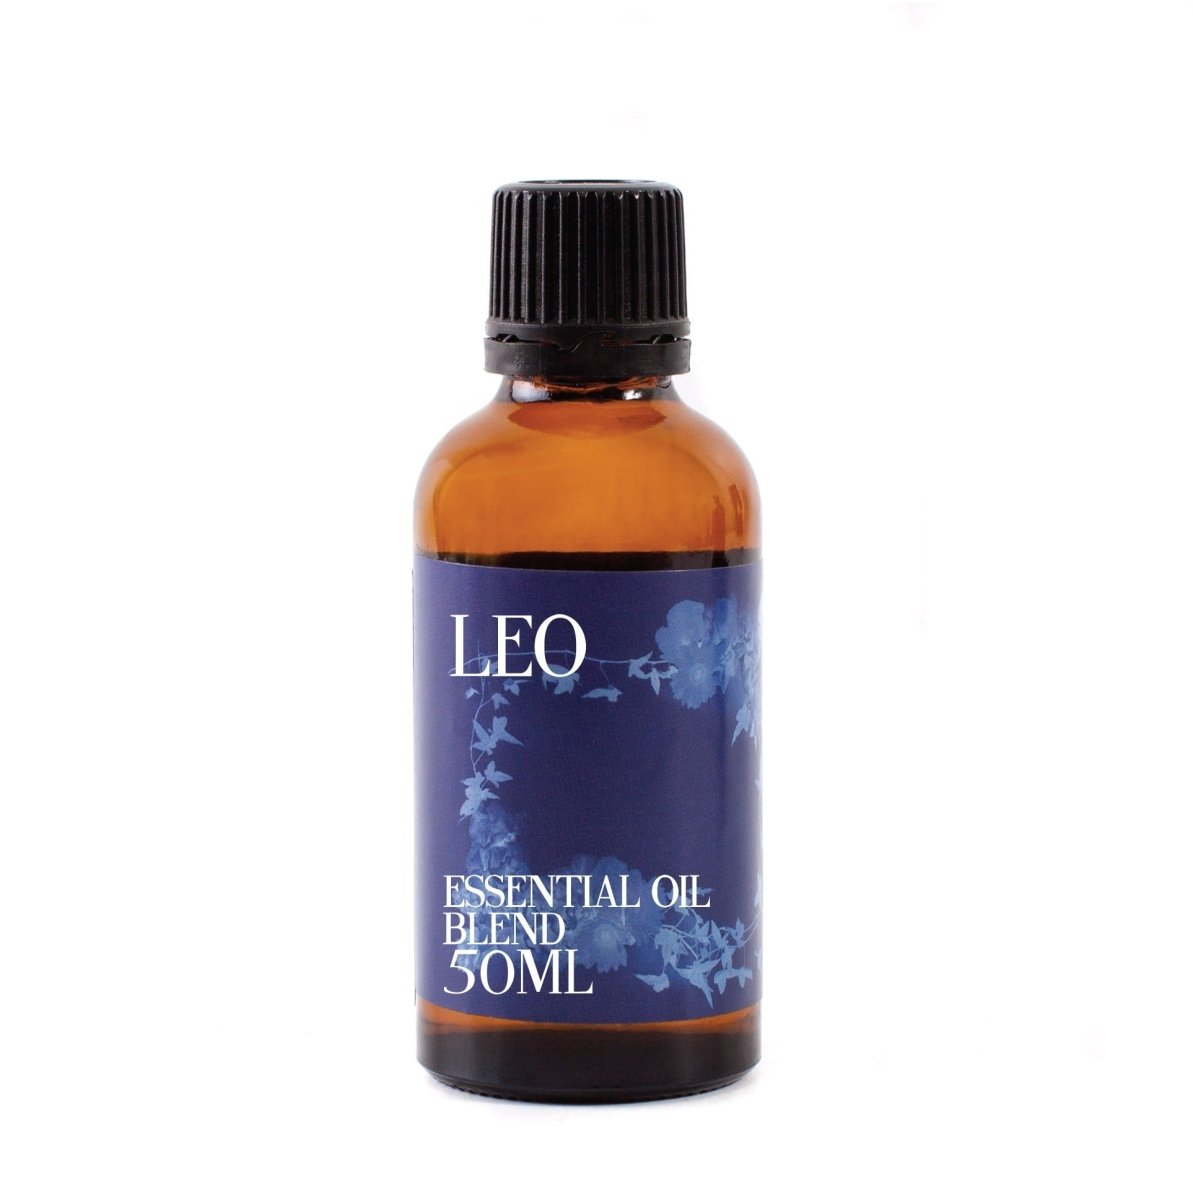 Leo - Zodiac Sign Astrology Essential Oil Blend - Mystic Moments UK